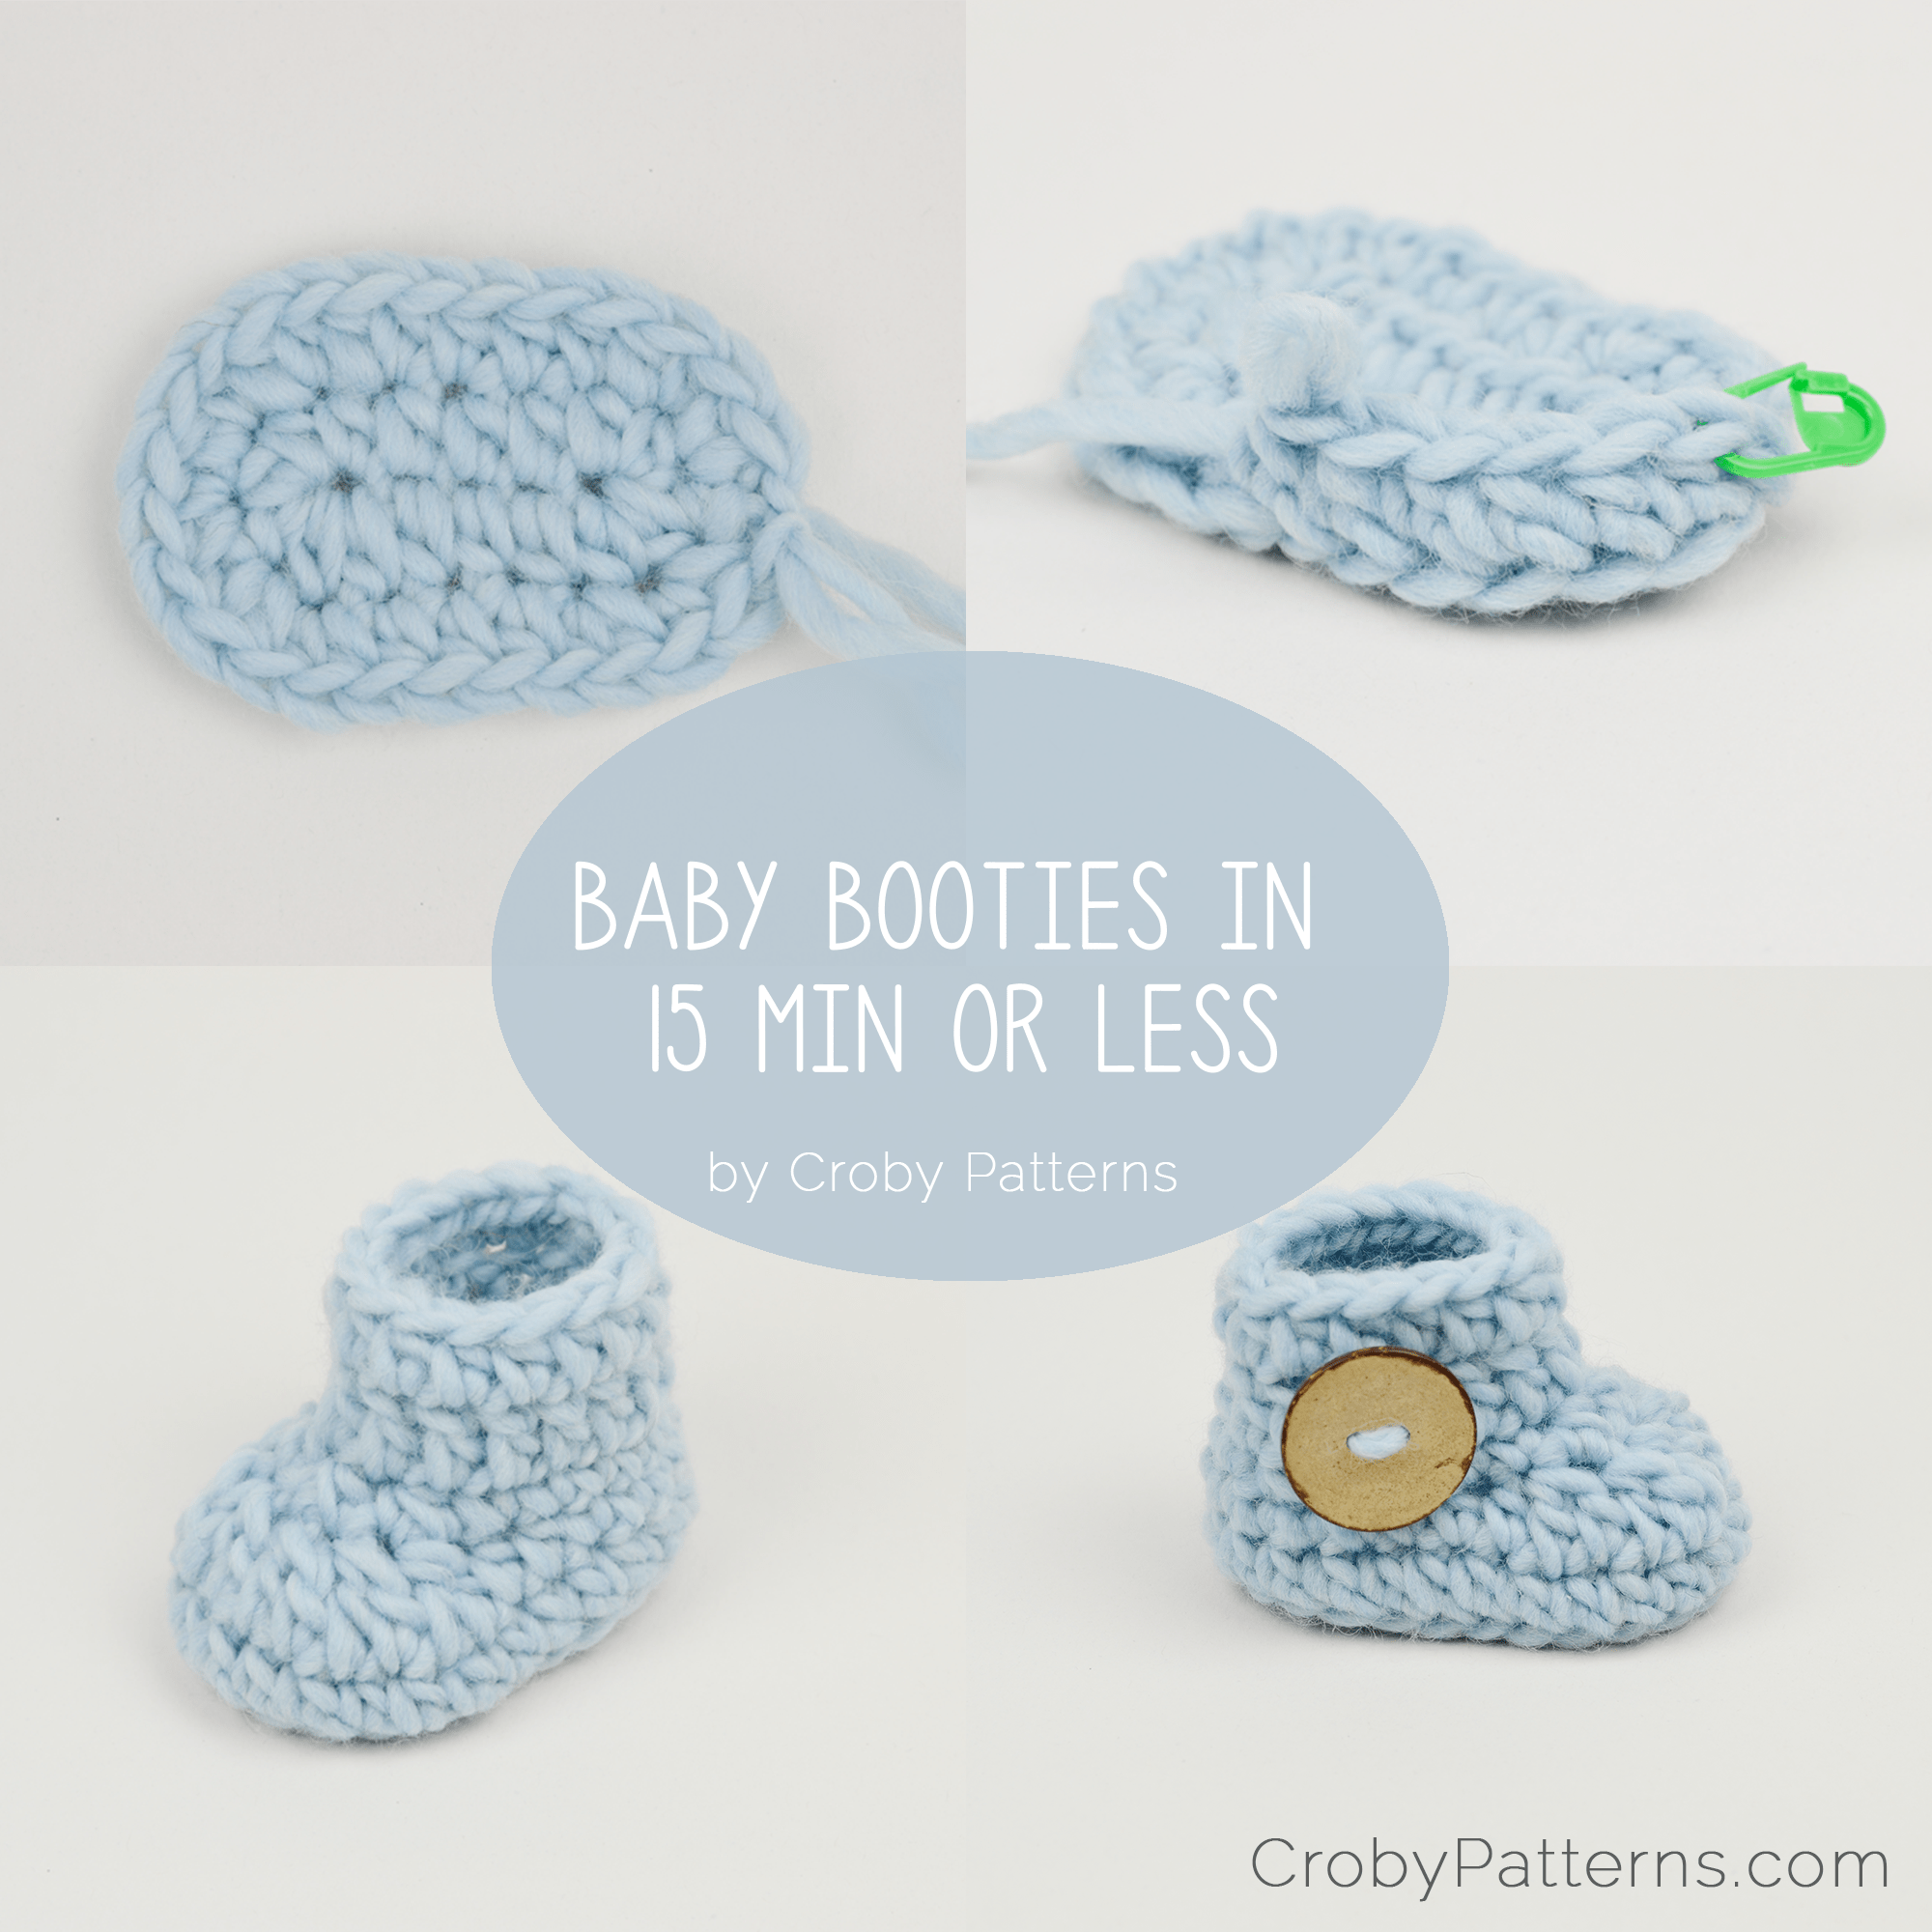 Crochet baby booties in 15 minutes or less! | Croby Patterns